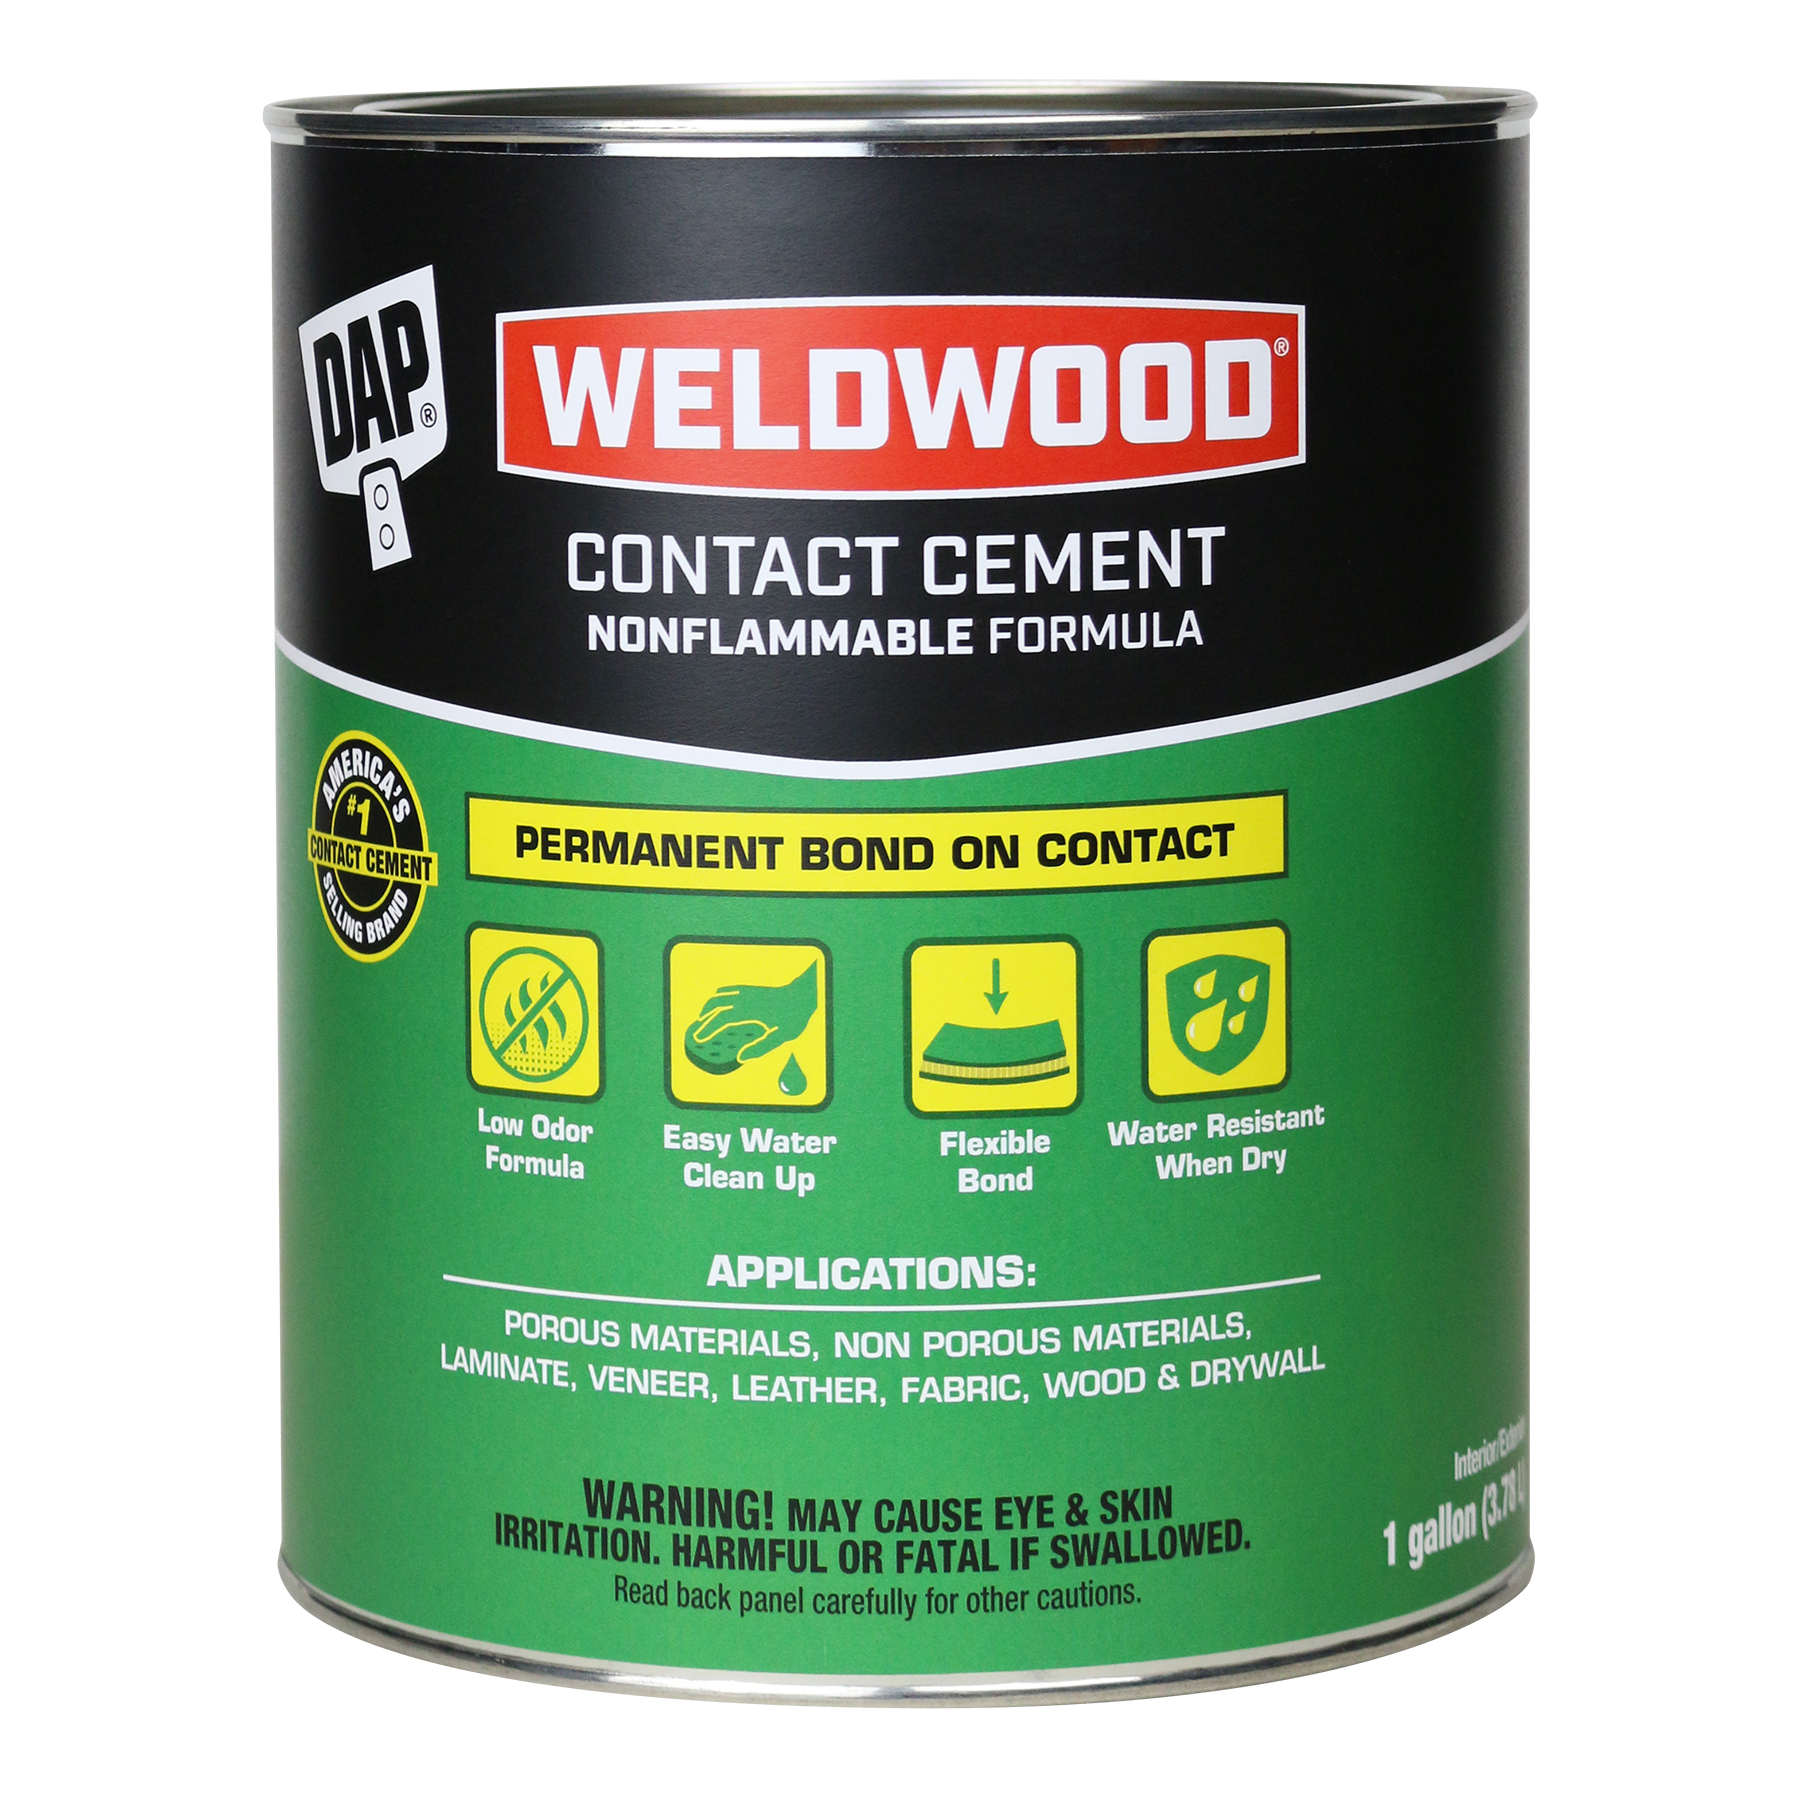 Weldwood Nonflammable Contact Cement, Contact Cement Laminate Flooring